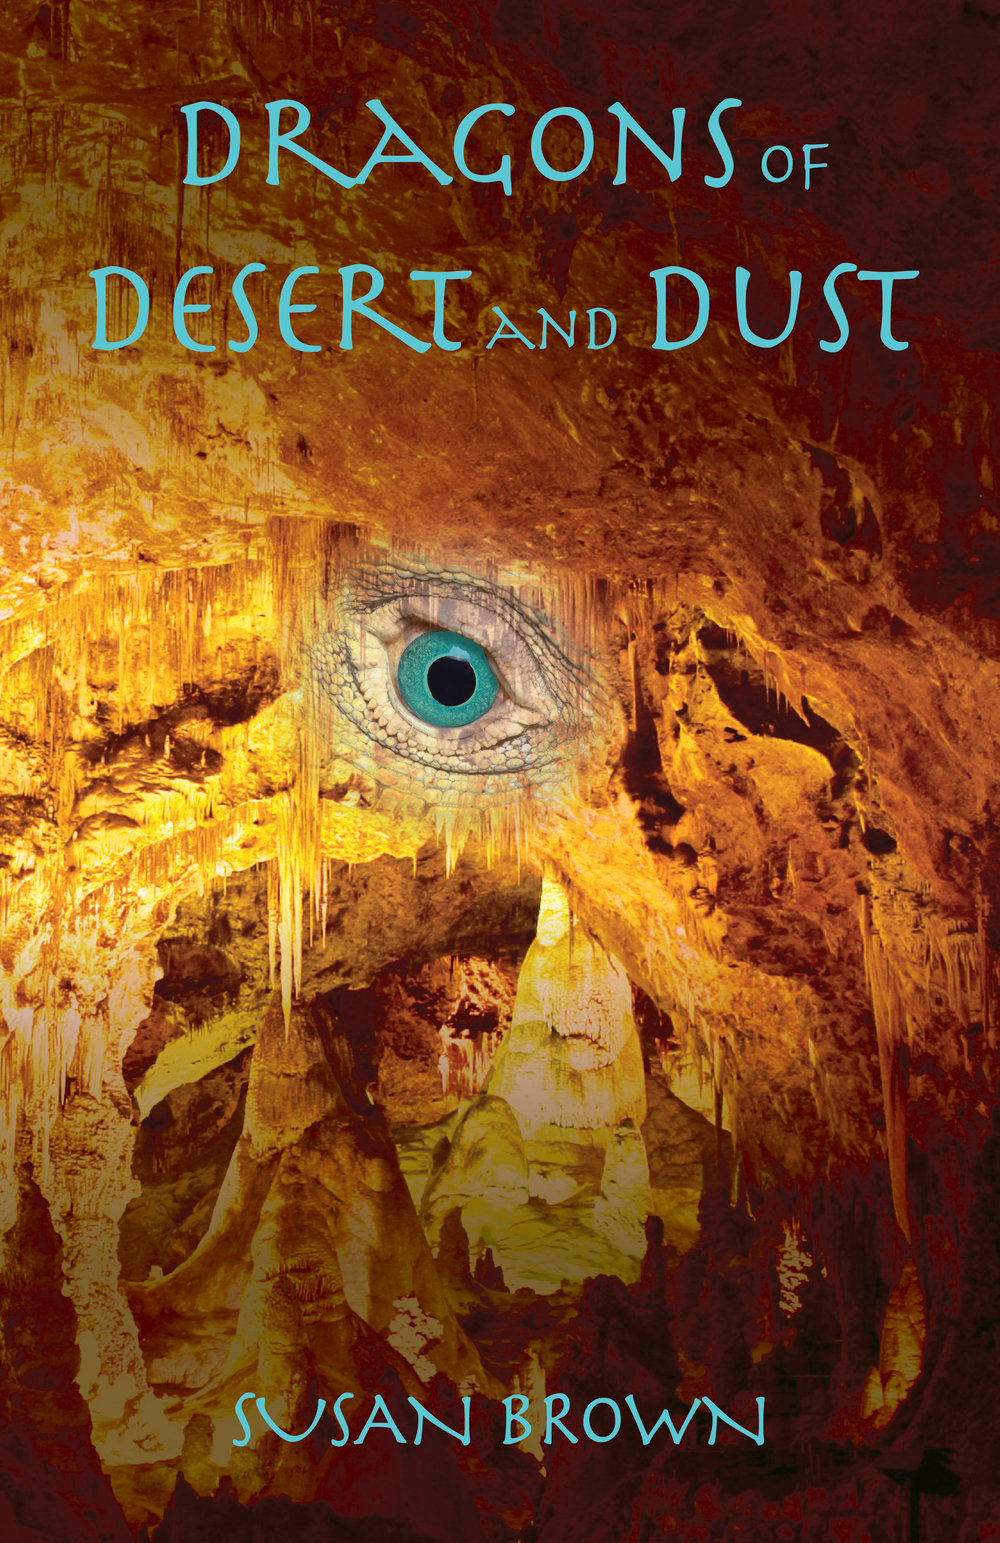 Dragons of Desert and Dust